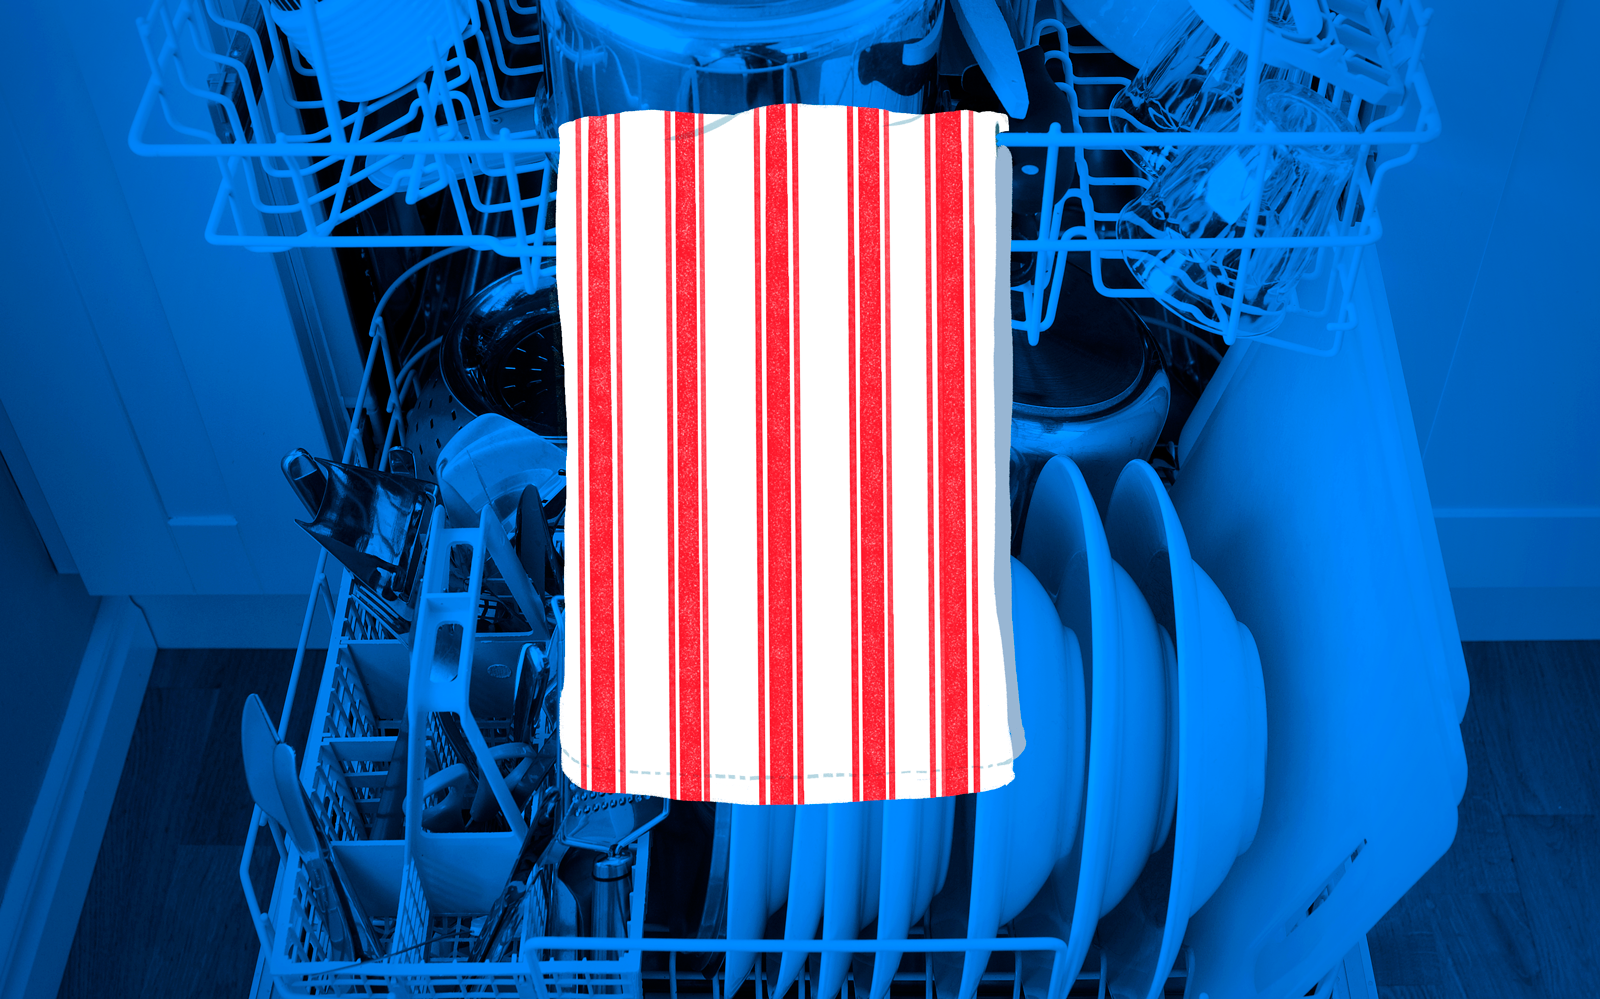 Hang A Dish Towel Inside The Dishwasher To Show The Dishes Are Clean